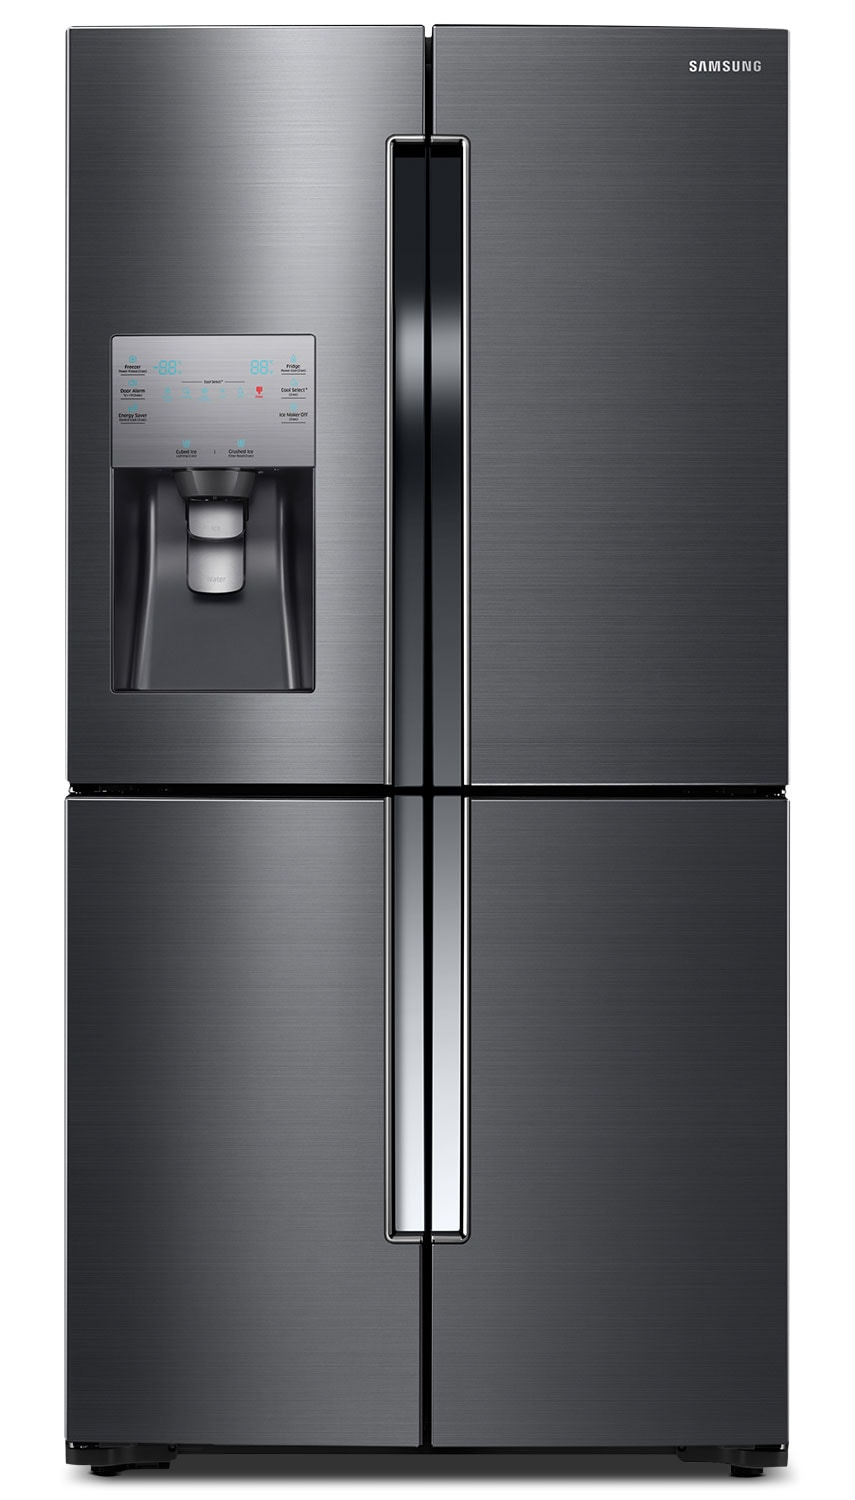 Samsung Black Stainless Steel French-Door Refrigerator (22.5 Cu. Ft.) - RF23J9011SG/AA